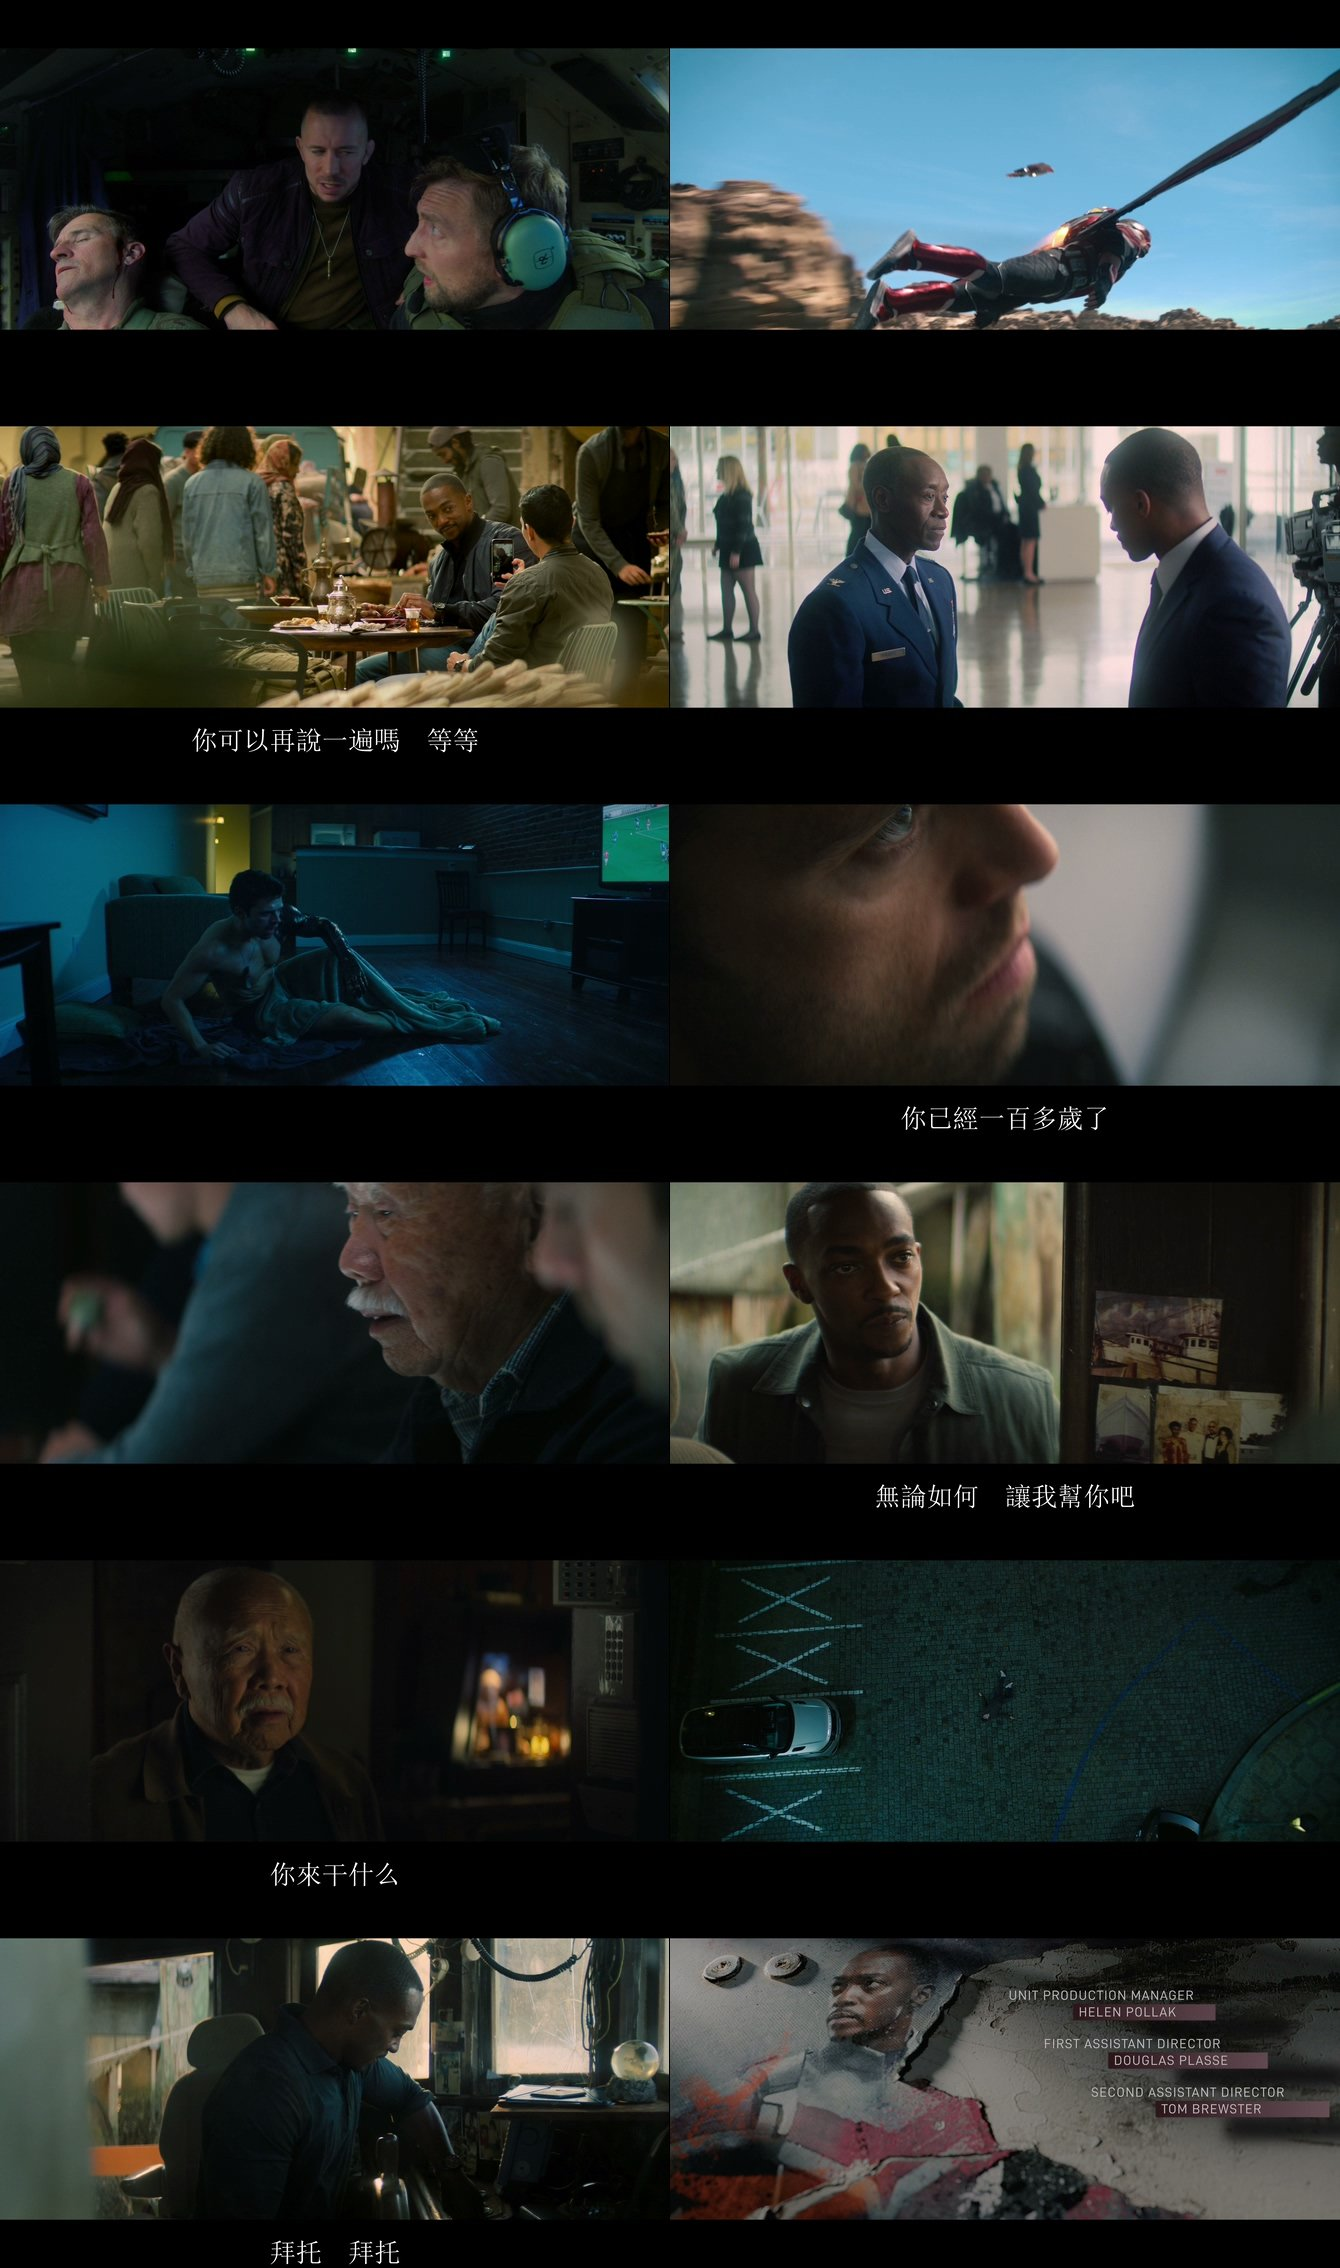 The.Falcon.and.The.Winter.Soldier.S01E01.New.World.Order.REPACK.1080p.DSNP.WEB-DL.DDP5.1.H.264-TOMMY